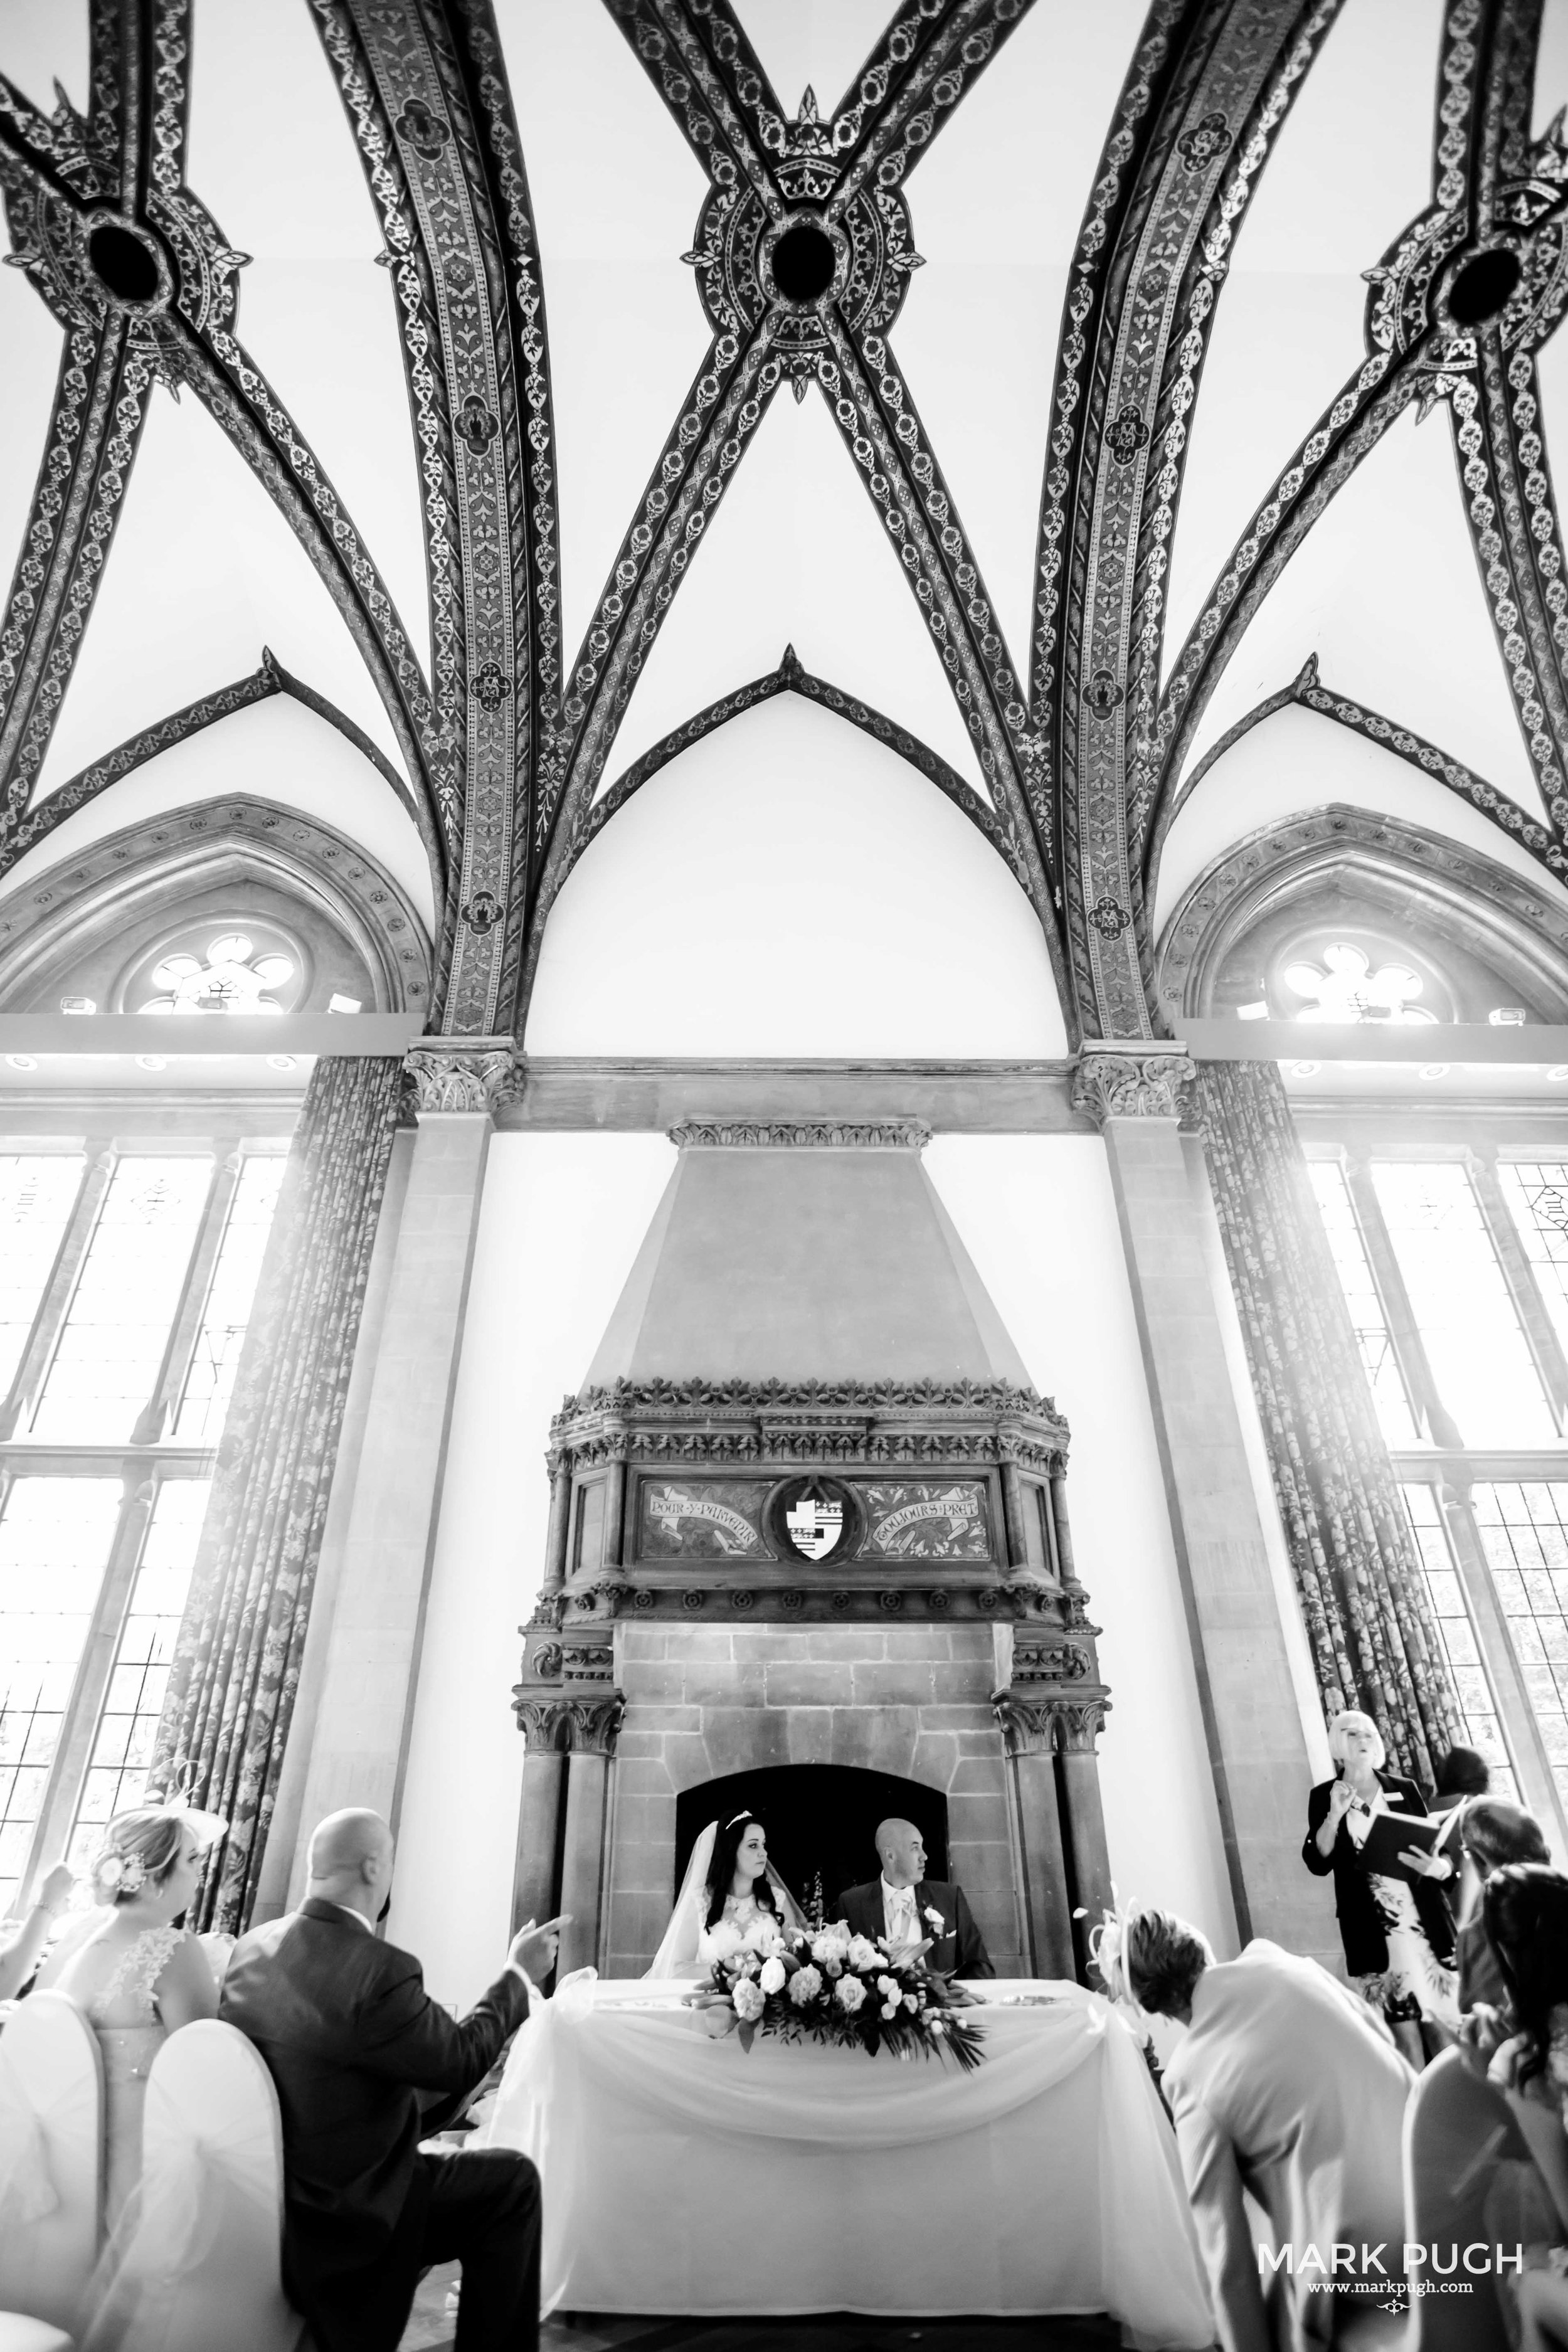 054 - Lauren and Tim - fineART wedding photography at Kelham Hall Newark UK by www.markpugh.com Mark Pugh of www.mpmedia.co.uk_.JPG